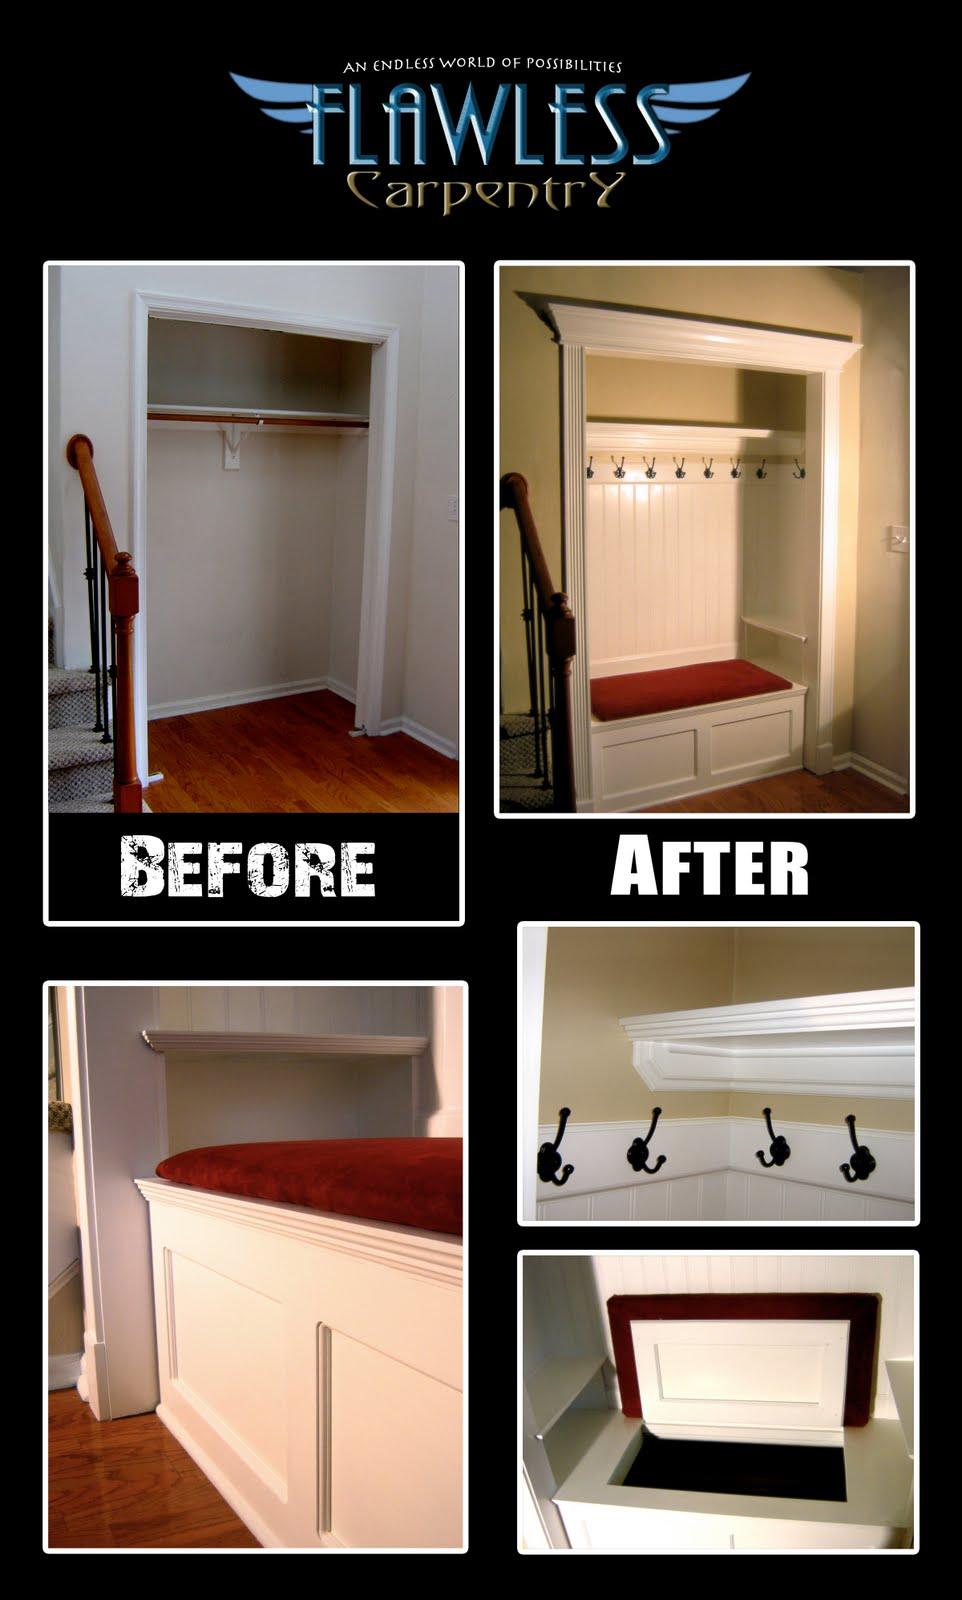 Flawless Carpentry